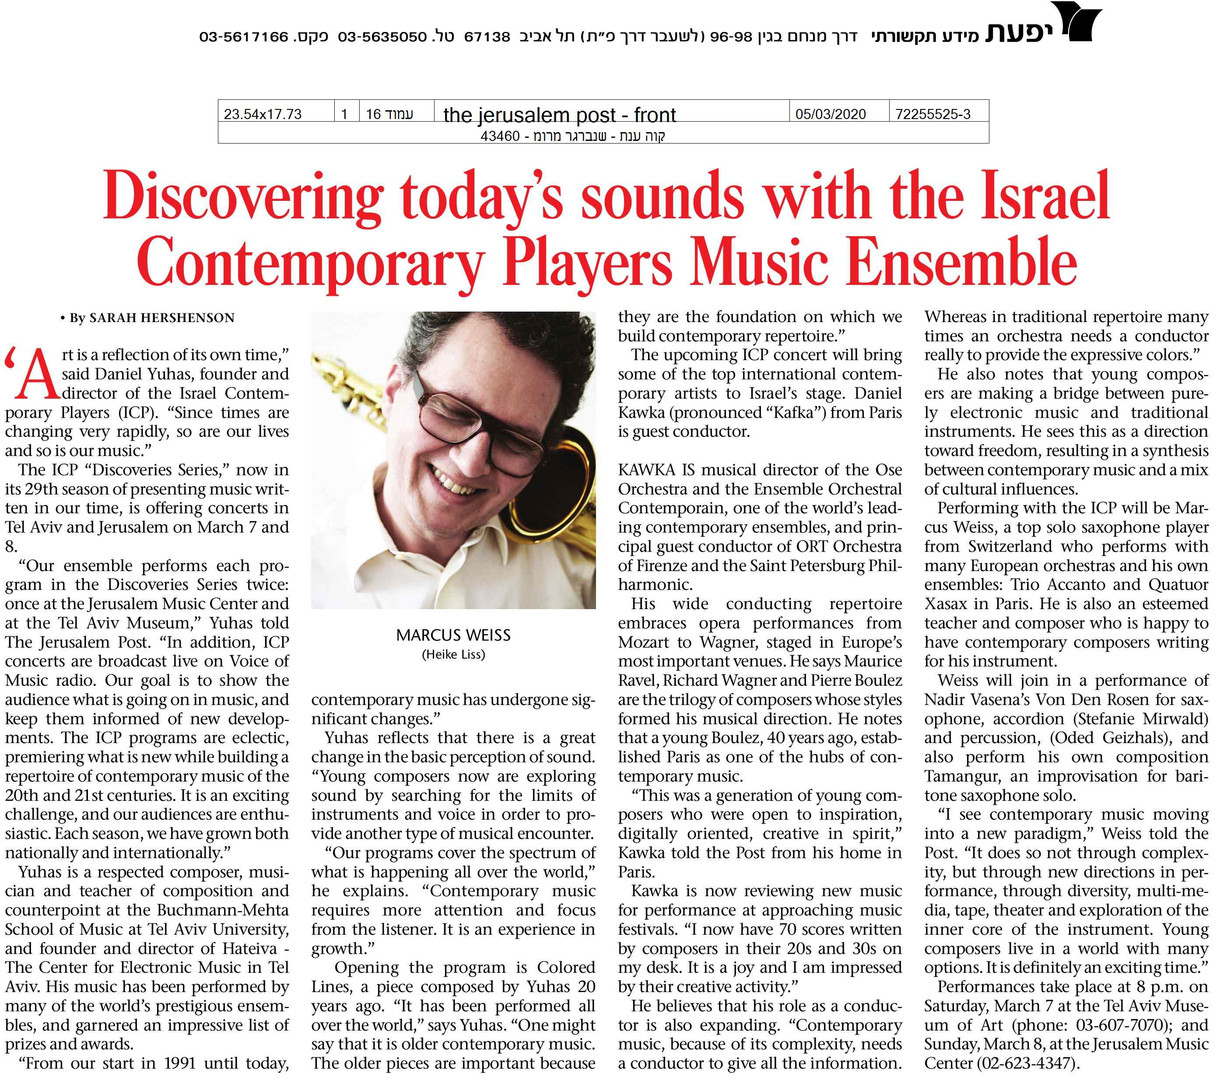 Discovering Today's Sounds with Israel Contemporary Players Music Ensemble